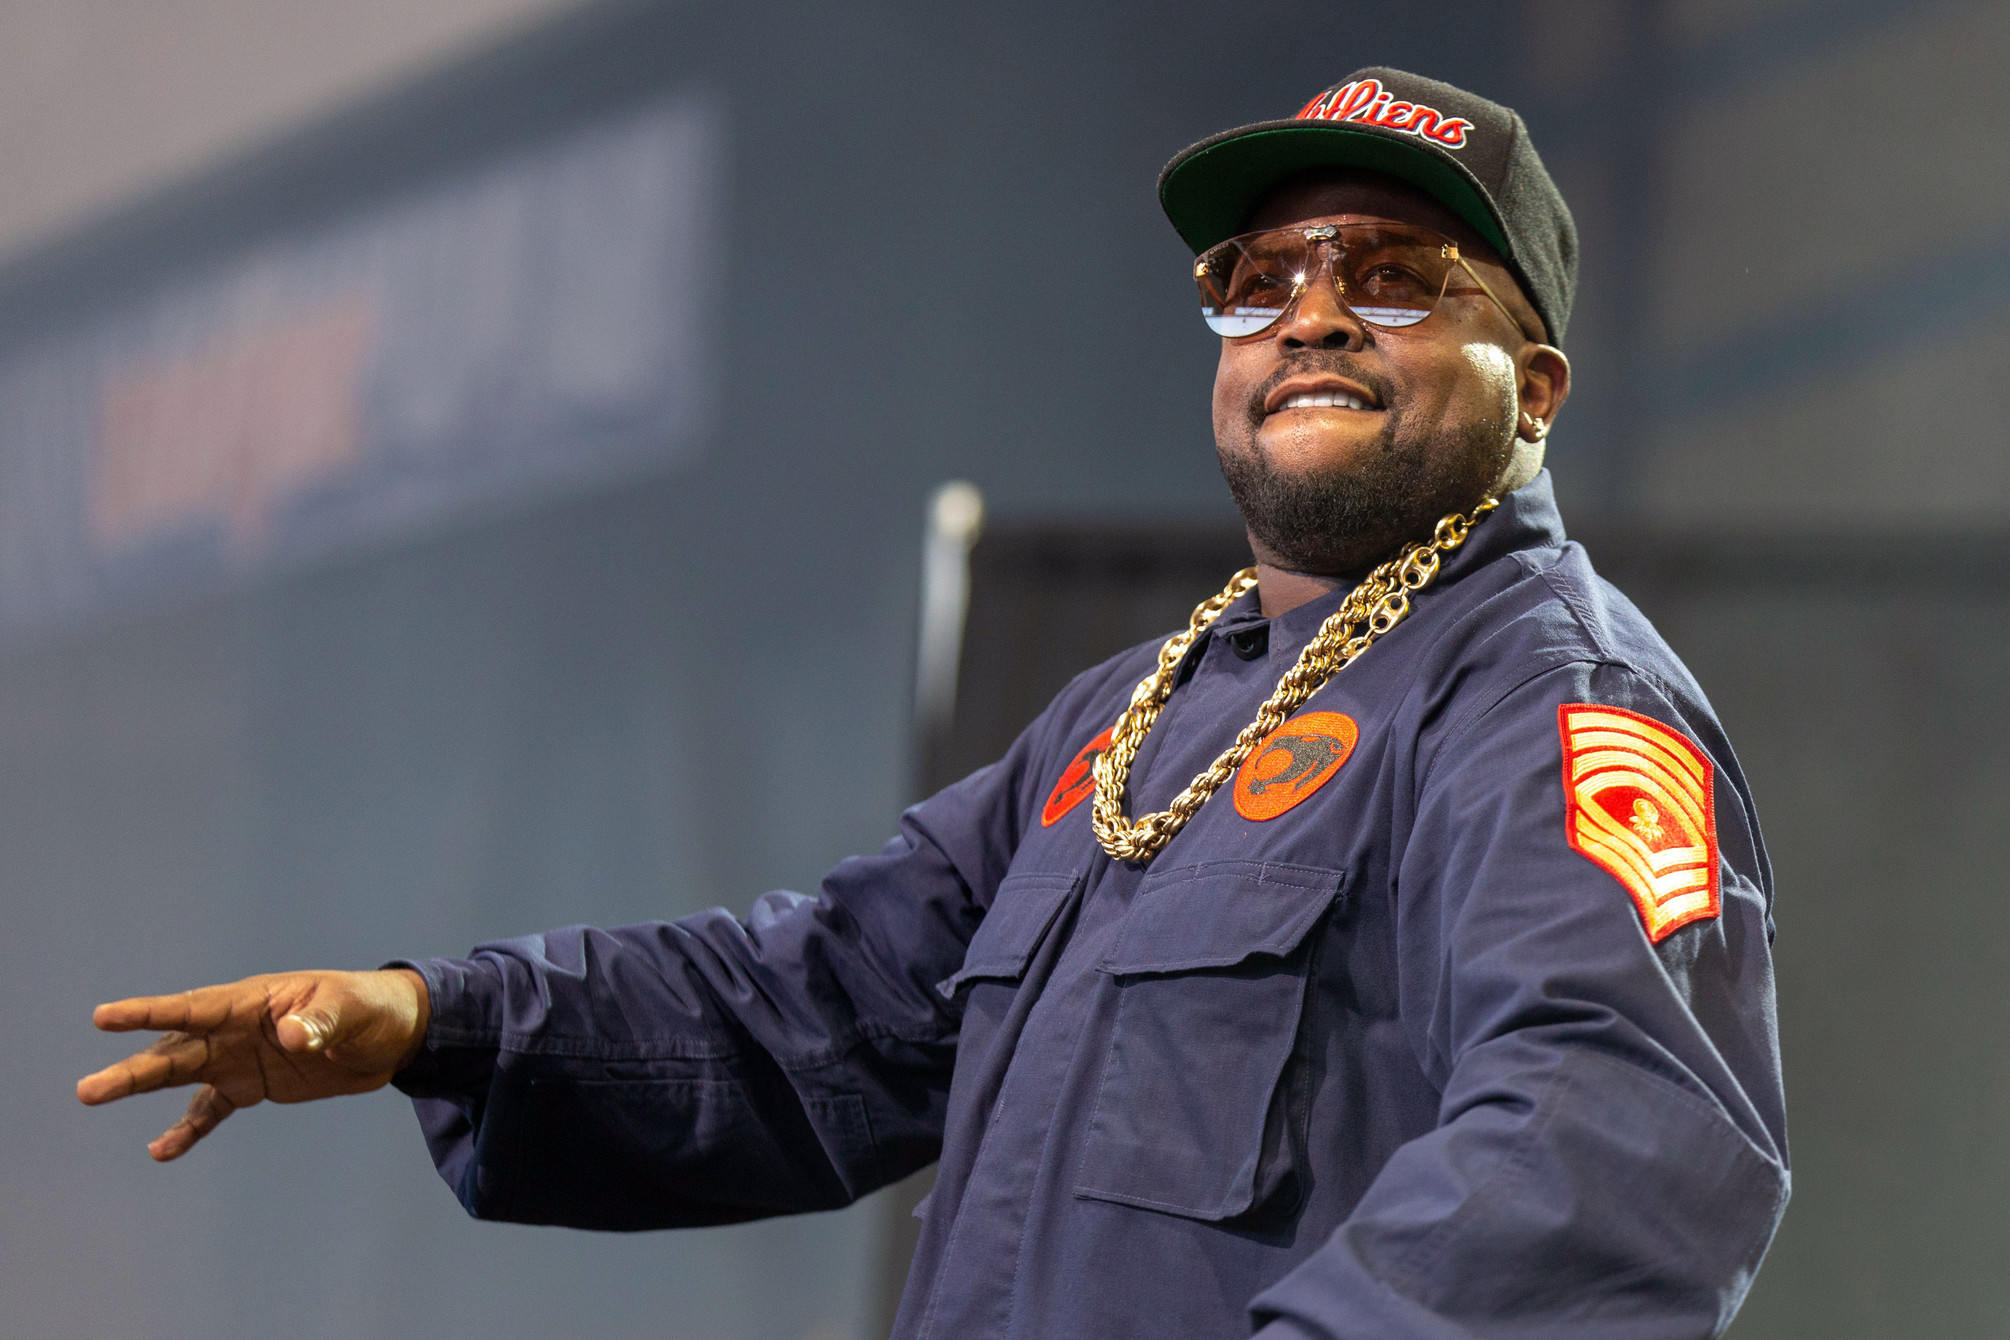 Big Boi at the Summerfest Music Festival, Milwaukee, USA